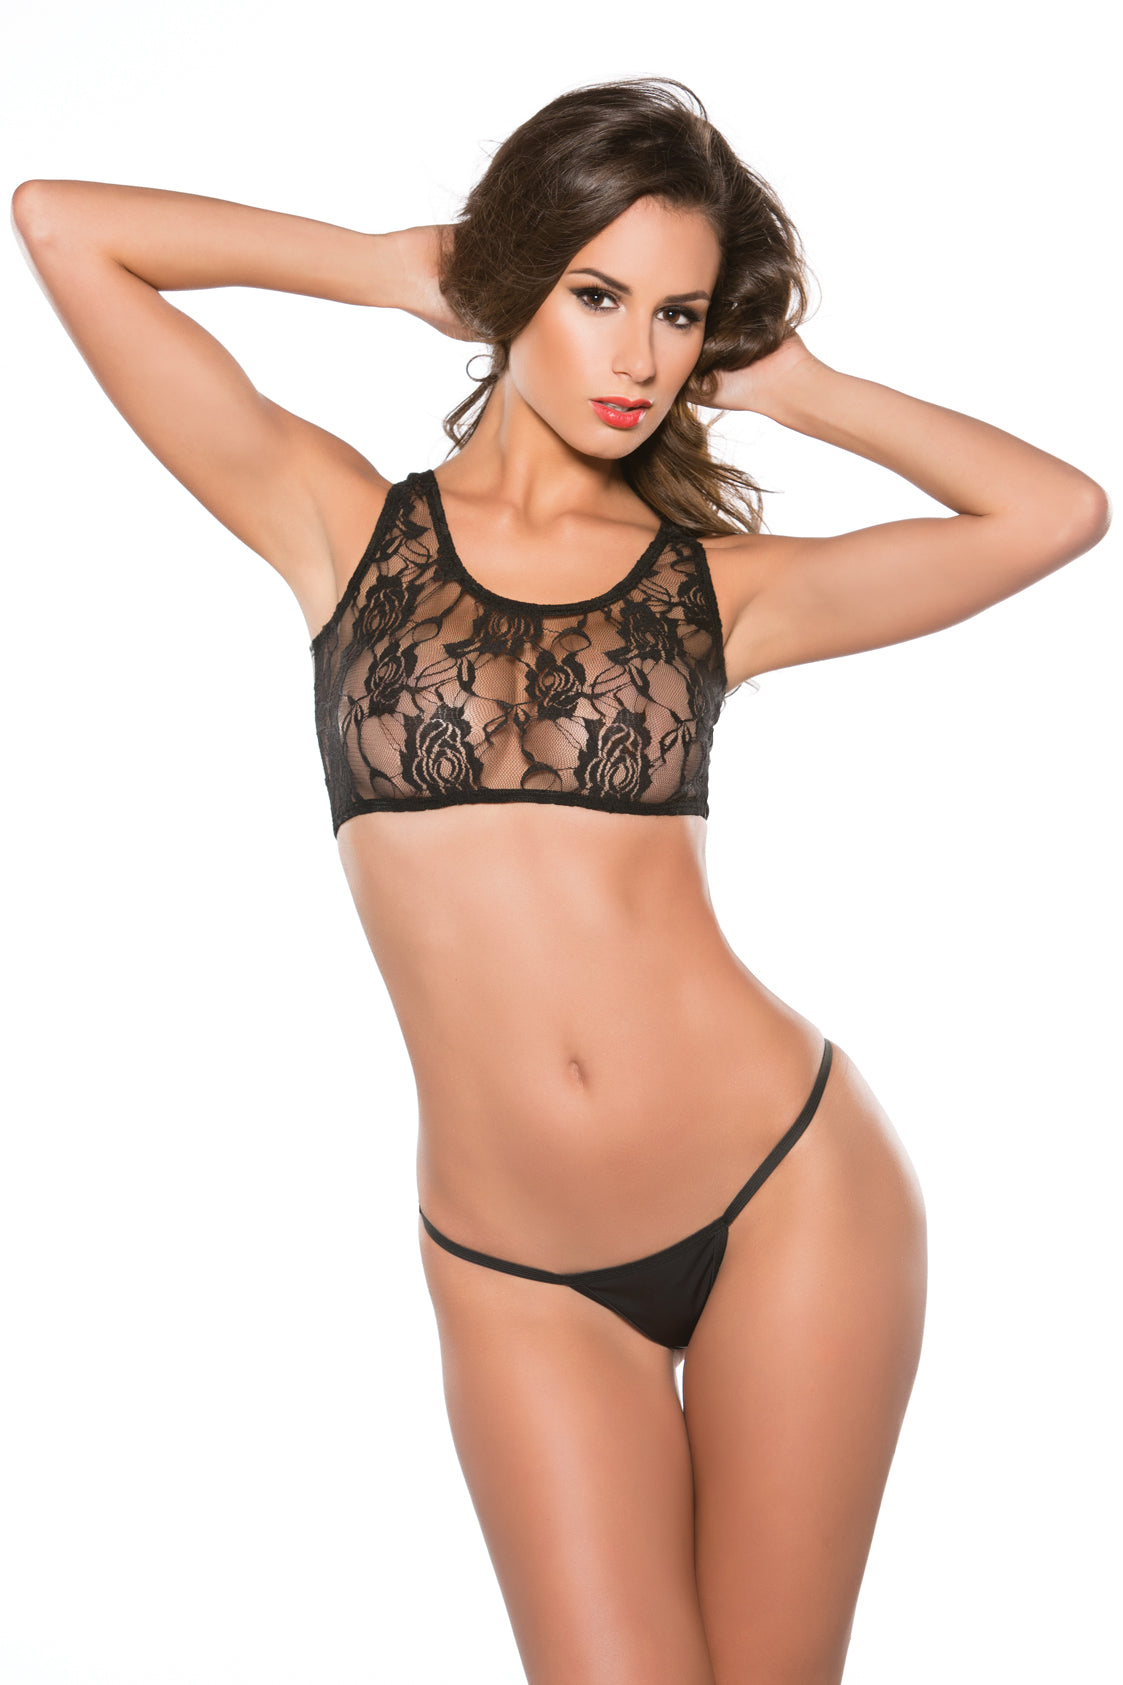 Lace and Wetlook Midriff Tank and G-String Set (12-4602)